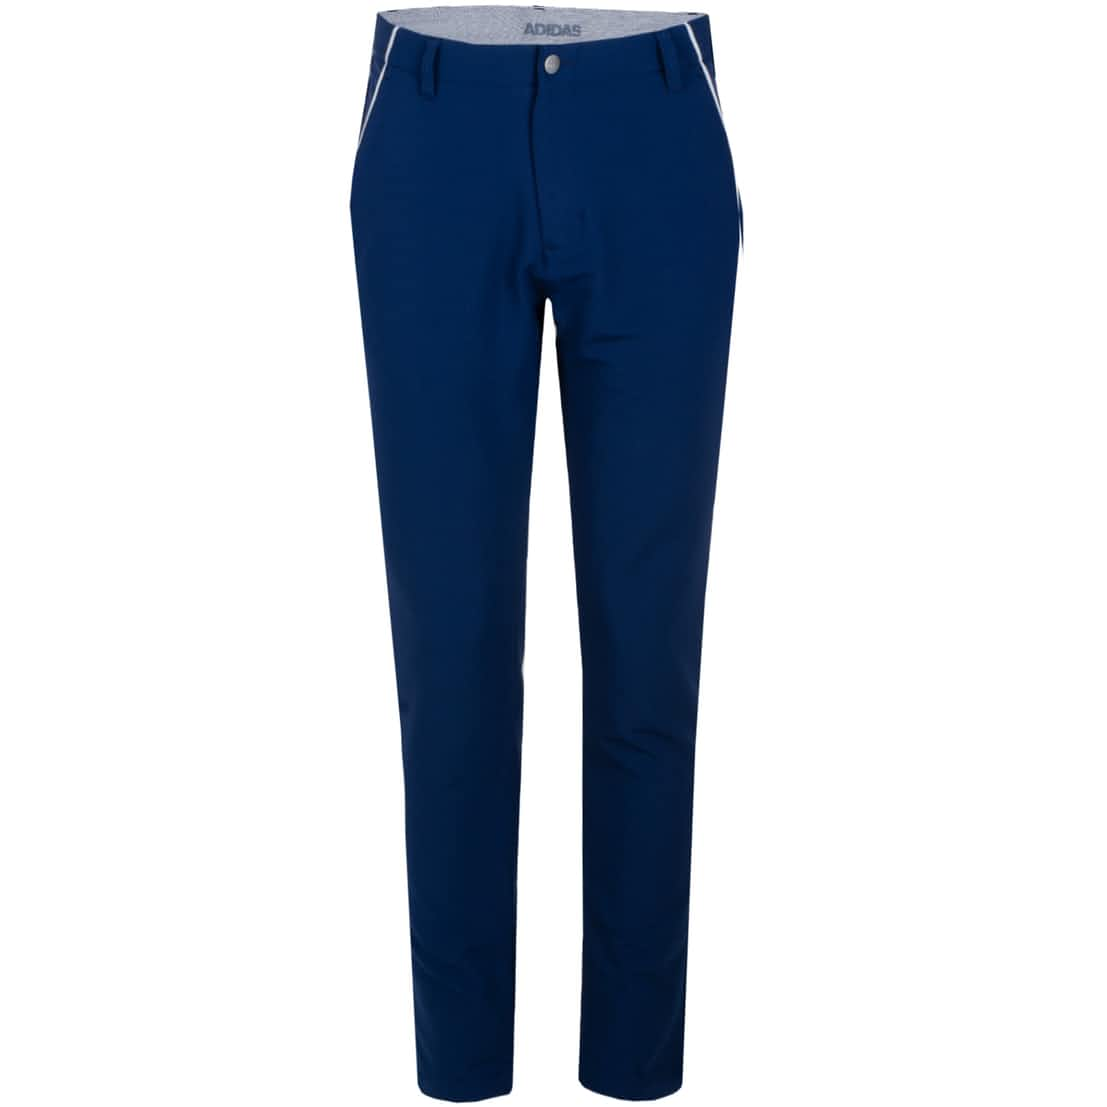 Fall Weight Pants Collegiate Navy - AW20